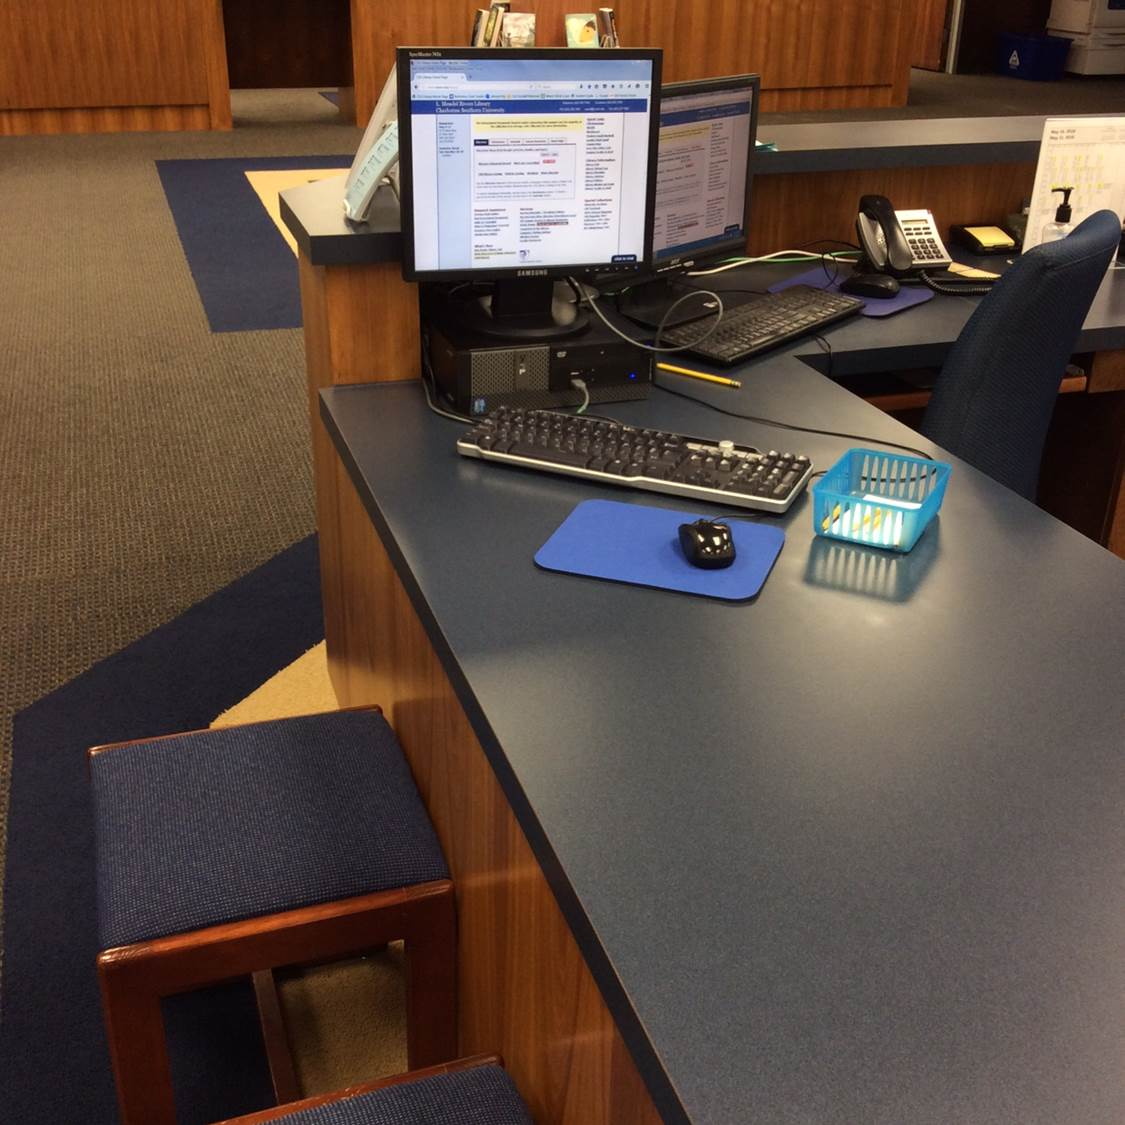 Photo of Questions Desk Reference Station